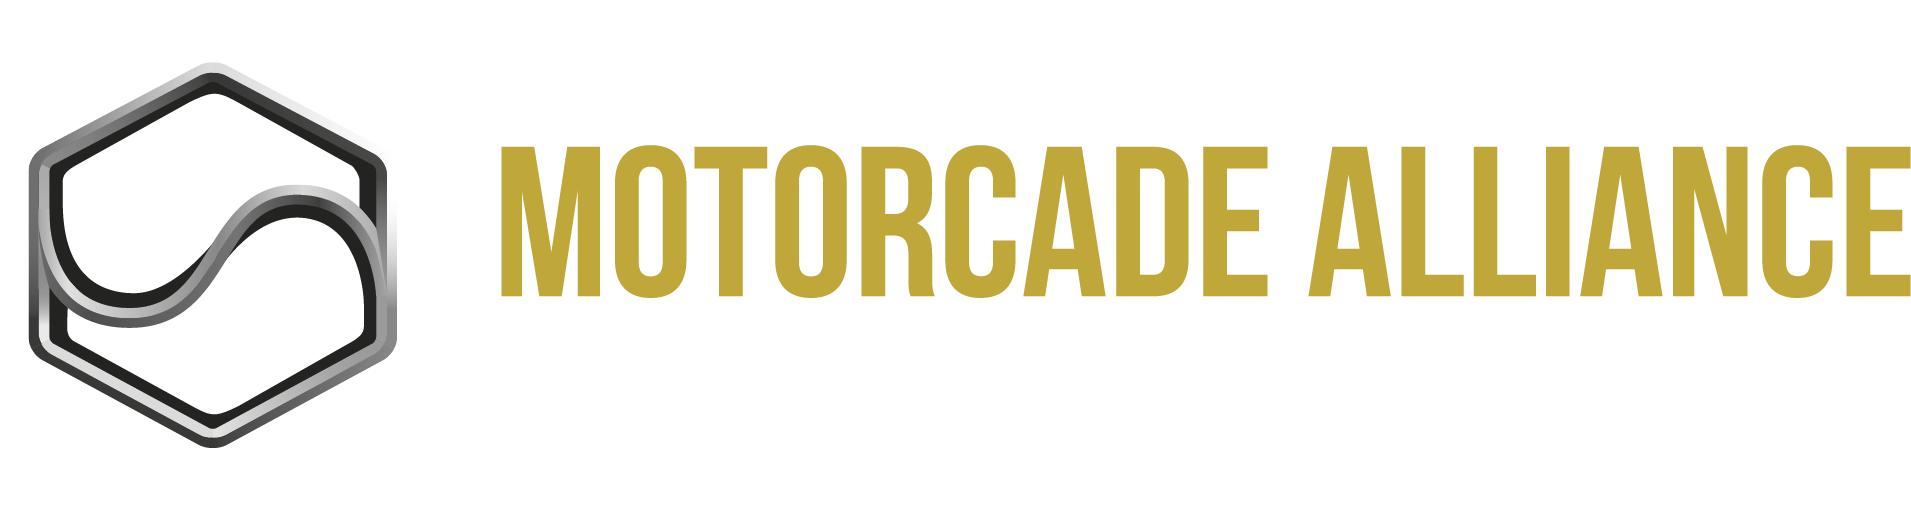 logotipo-motorcade-alliance